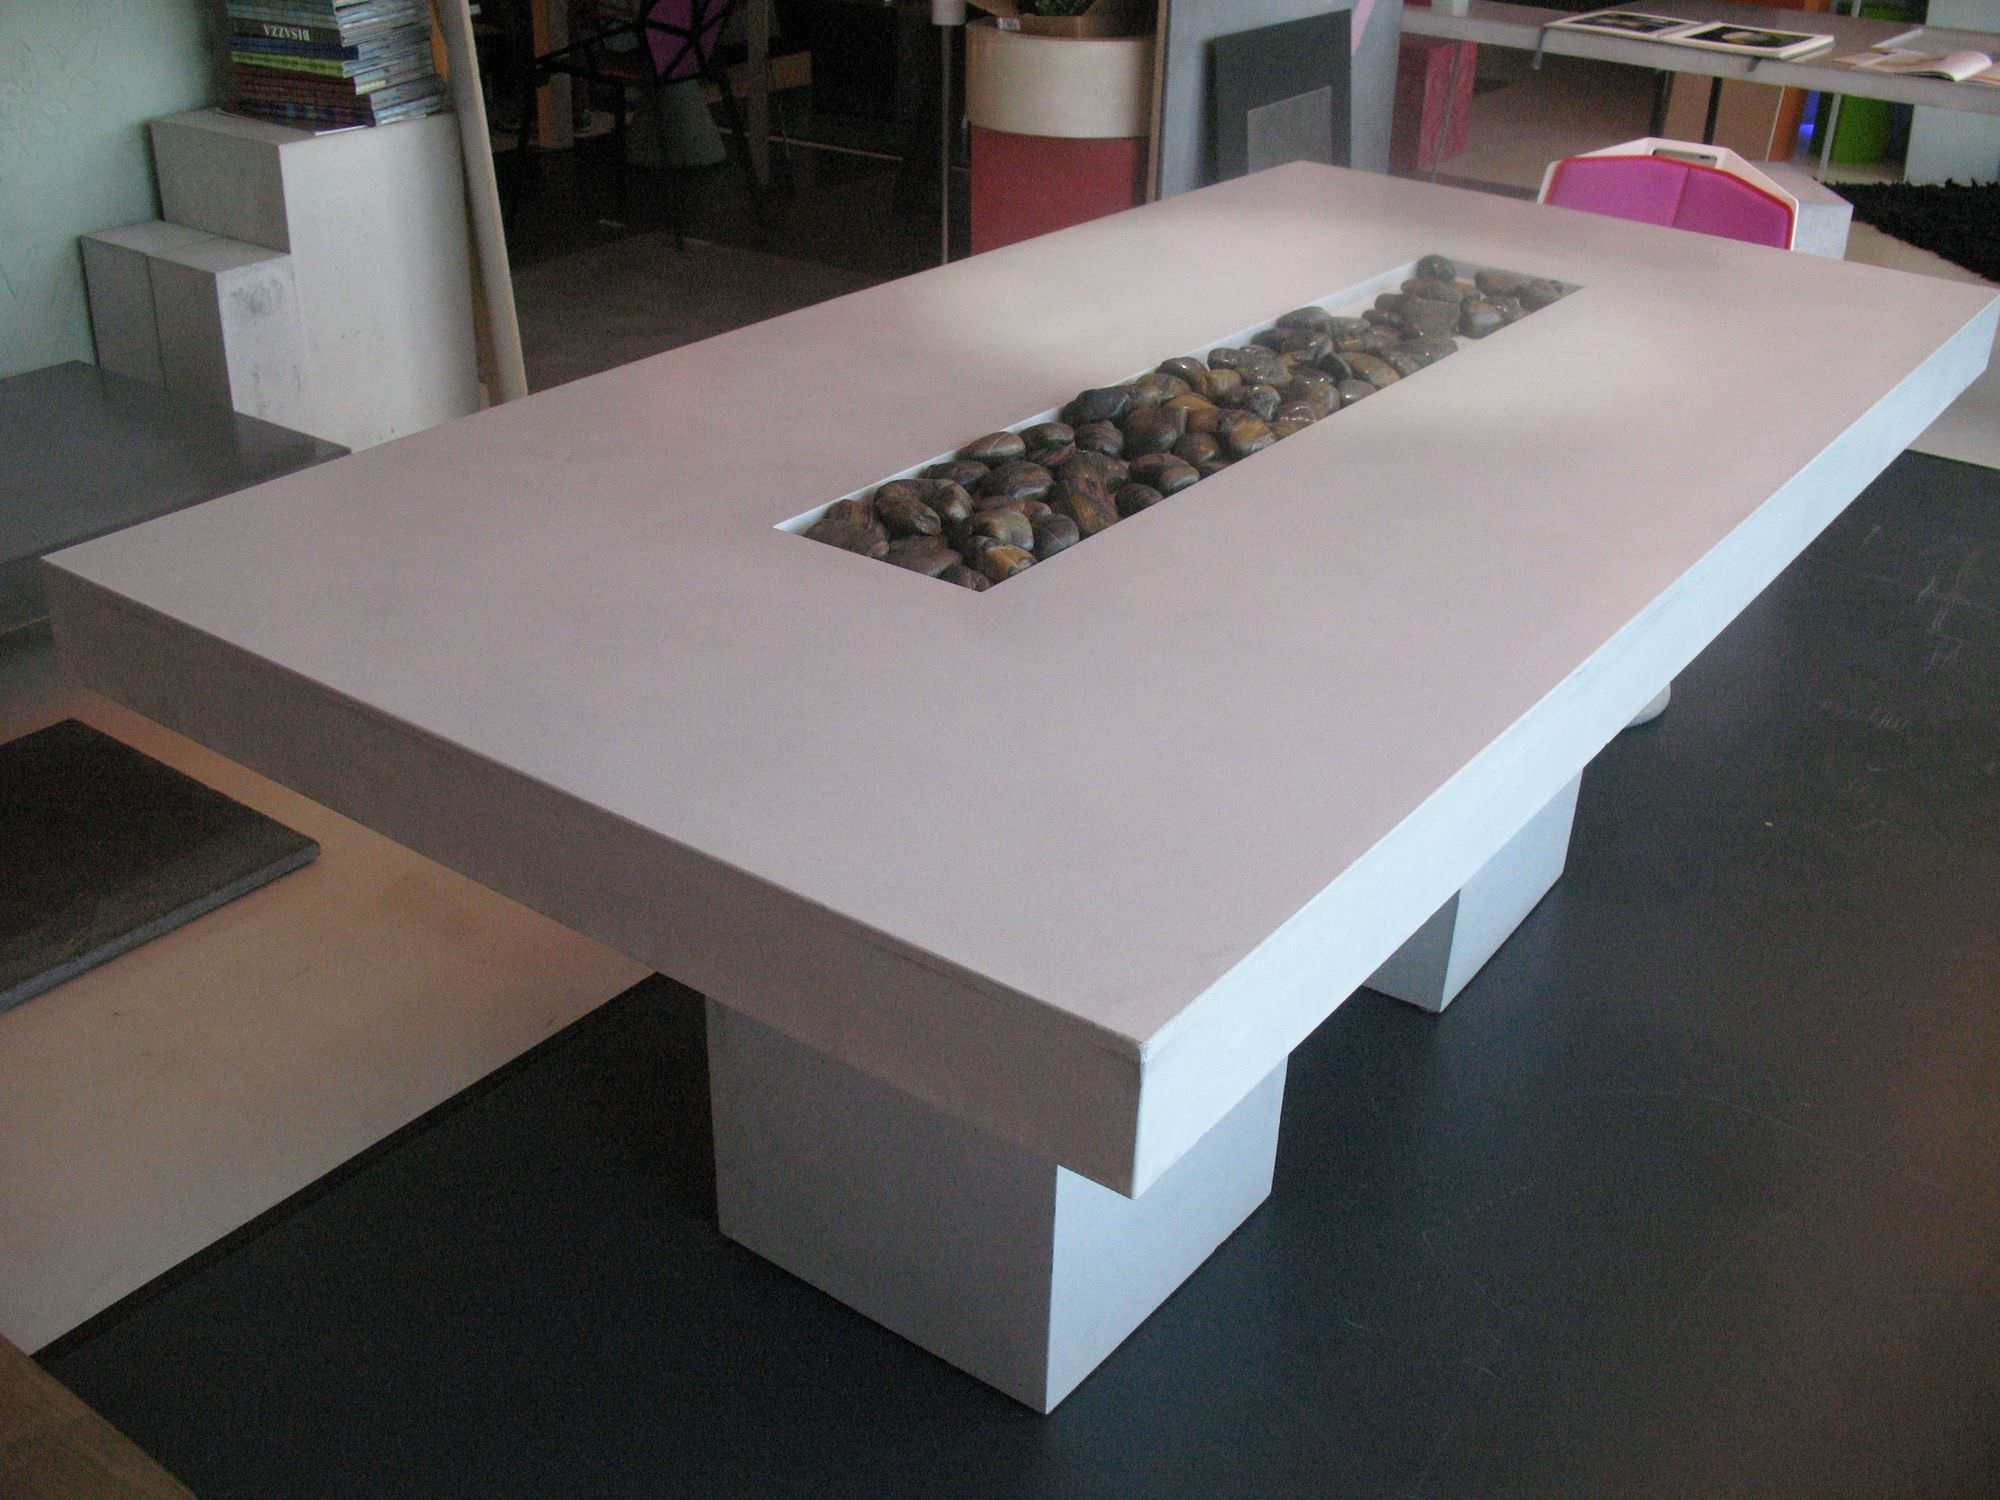 Contemporary table concrete rectangular CUBIK by Studio LCDA